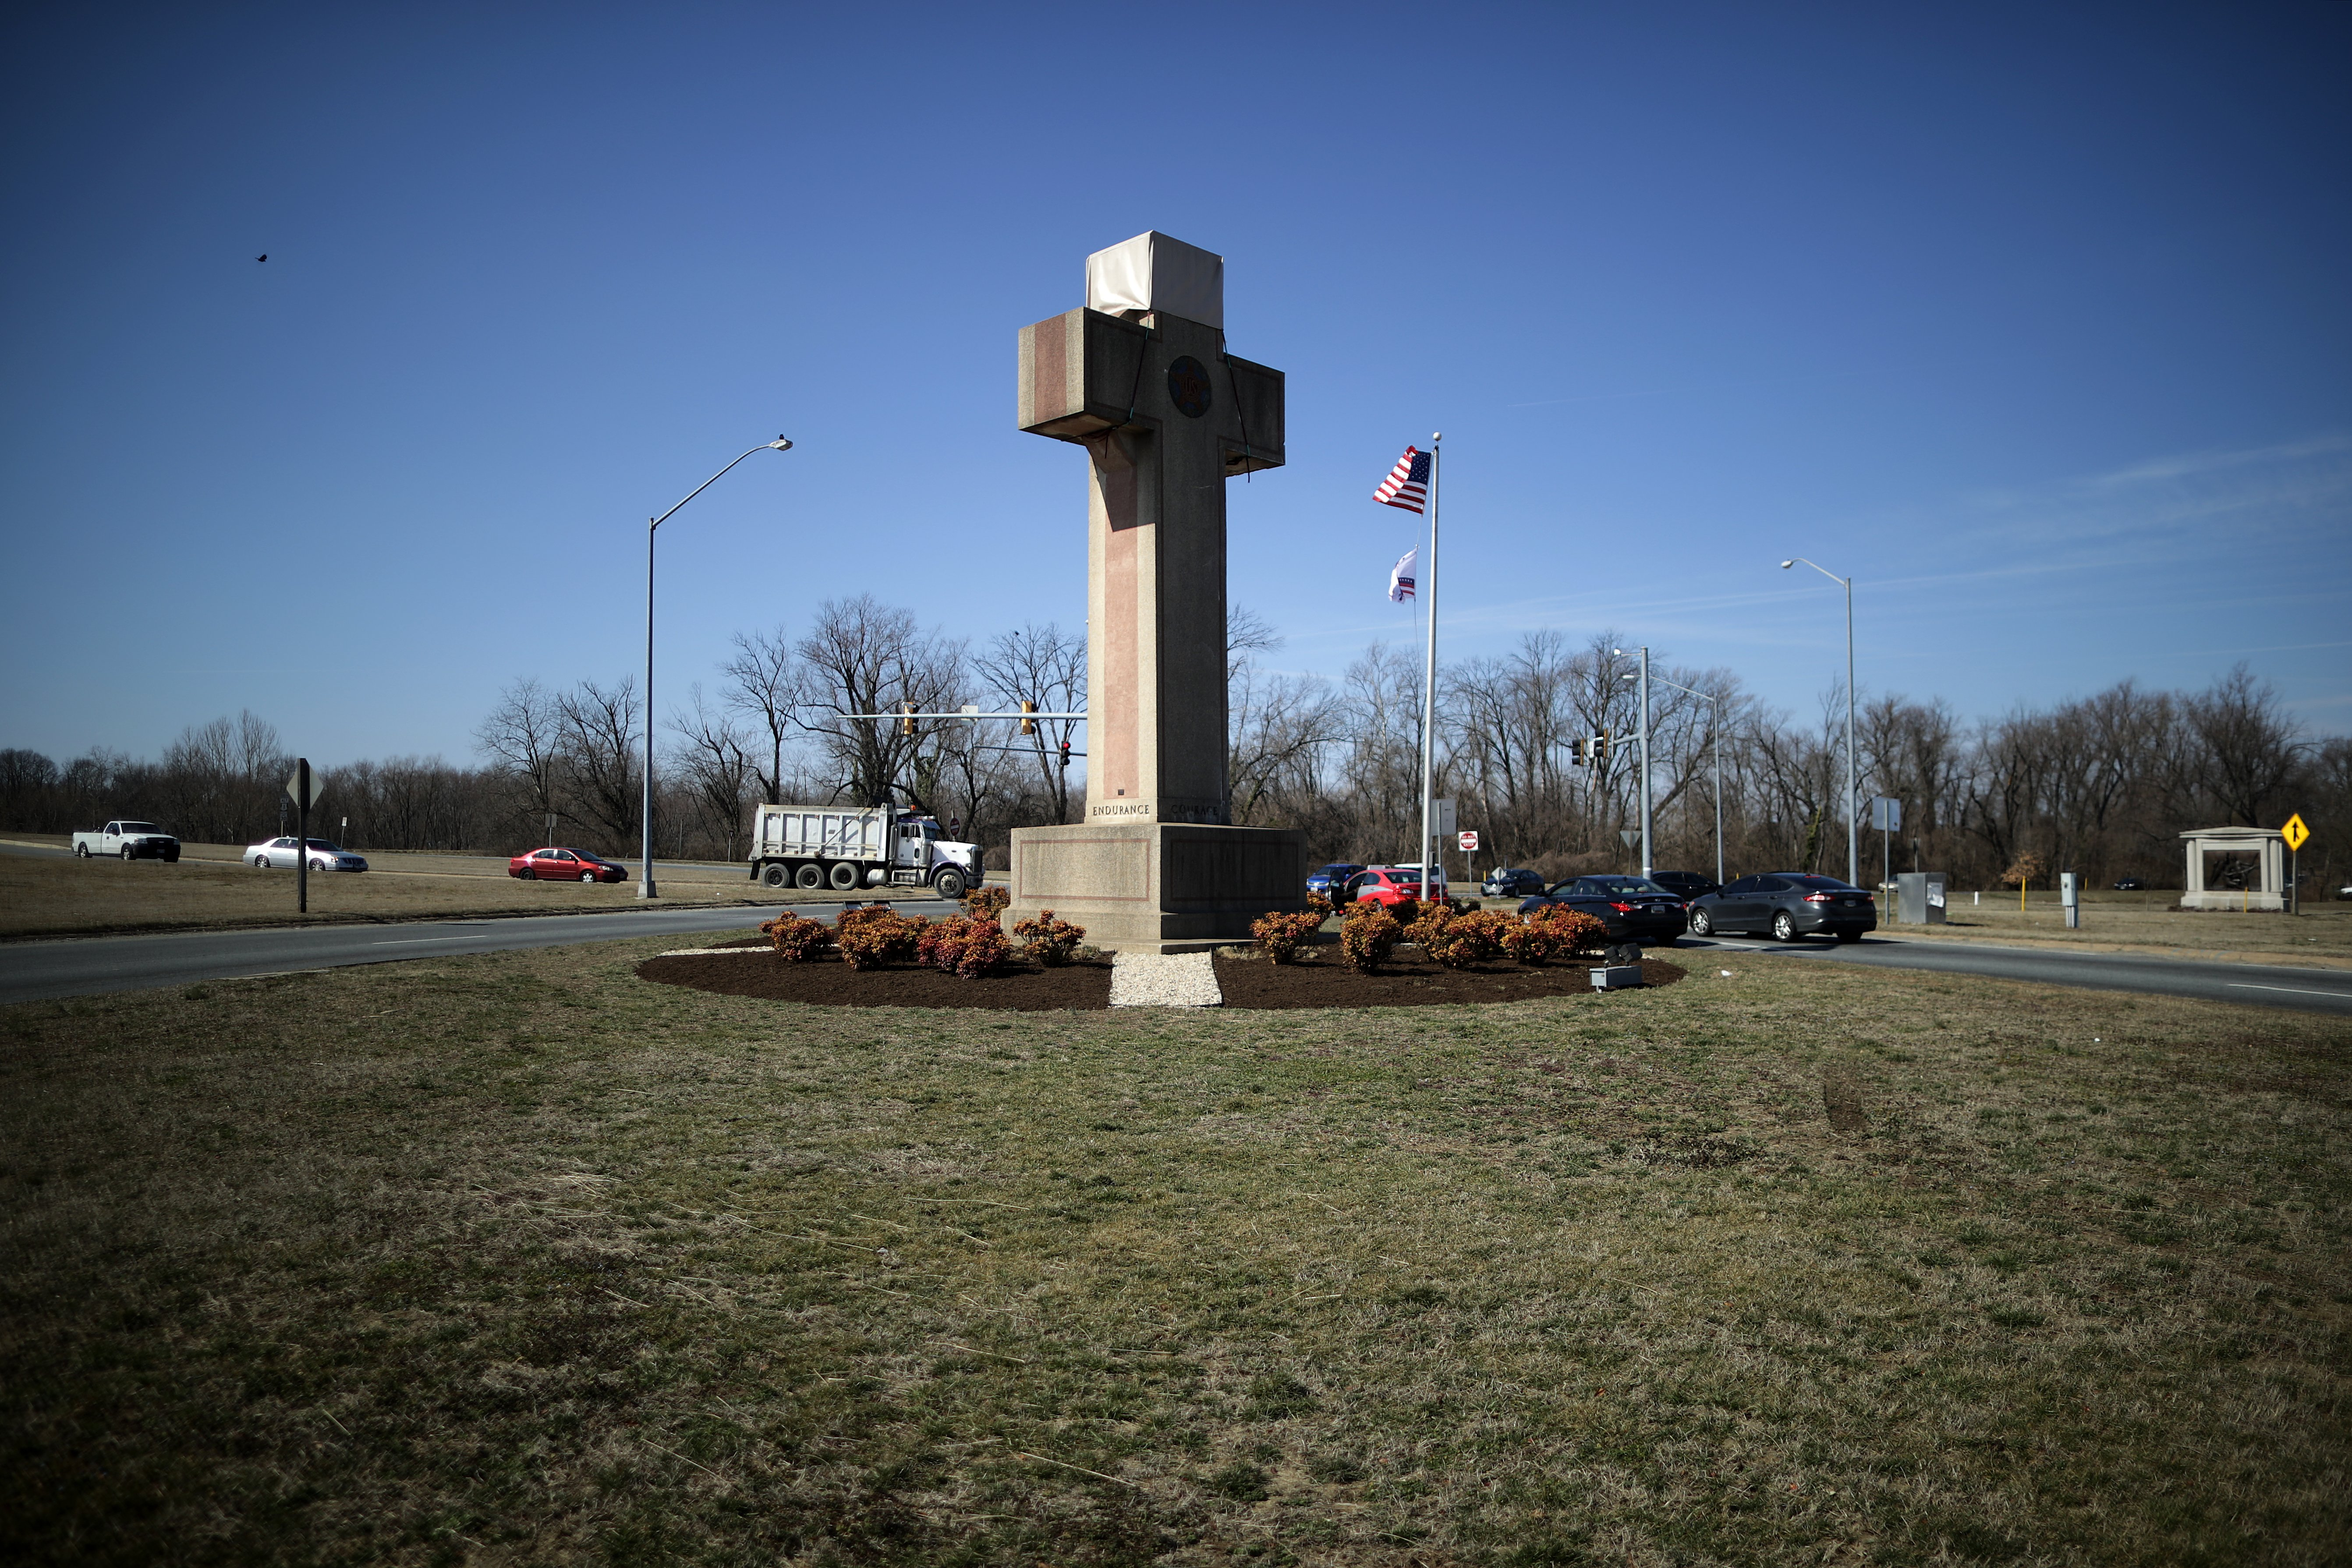 A 40-foot cross that honors 49 fallen World War I soldiers from Prince George's County stands at a busy intersection in Bladensburg, Maryland on February 28, 2019. (Chip Somodevilla/Getty Images)